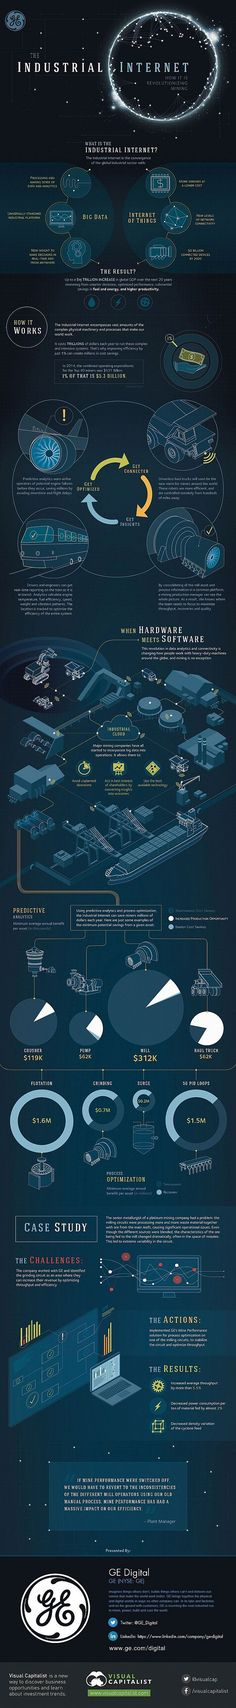 [INFOGRAPHIC] Explaining the Industrial Internet | Green Tech | Energy Digital